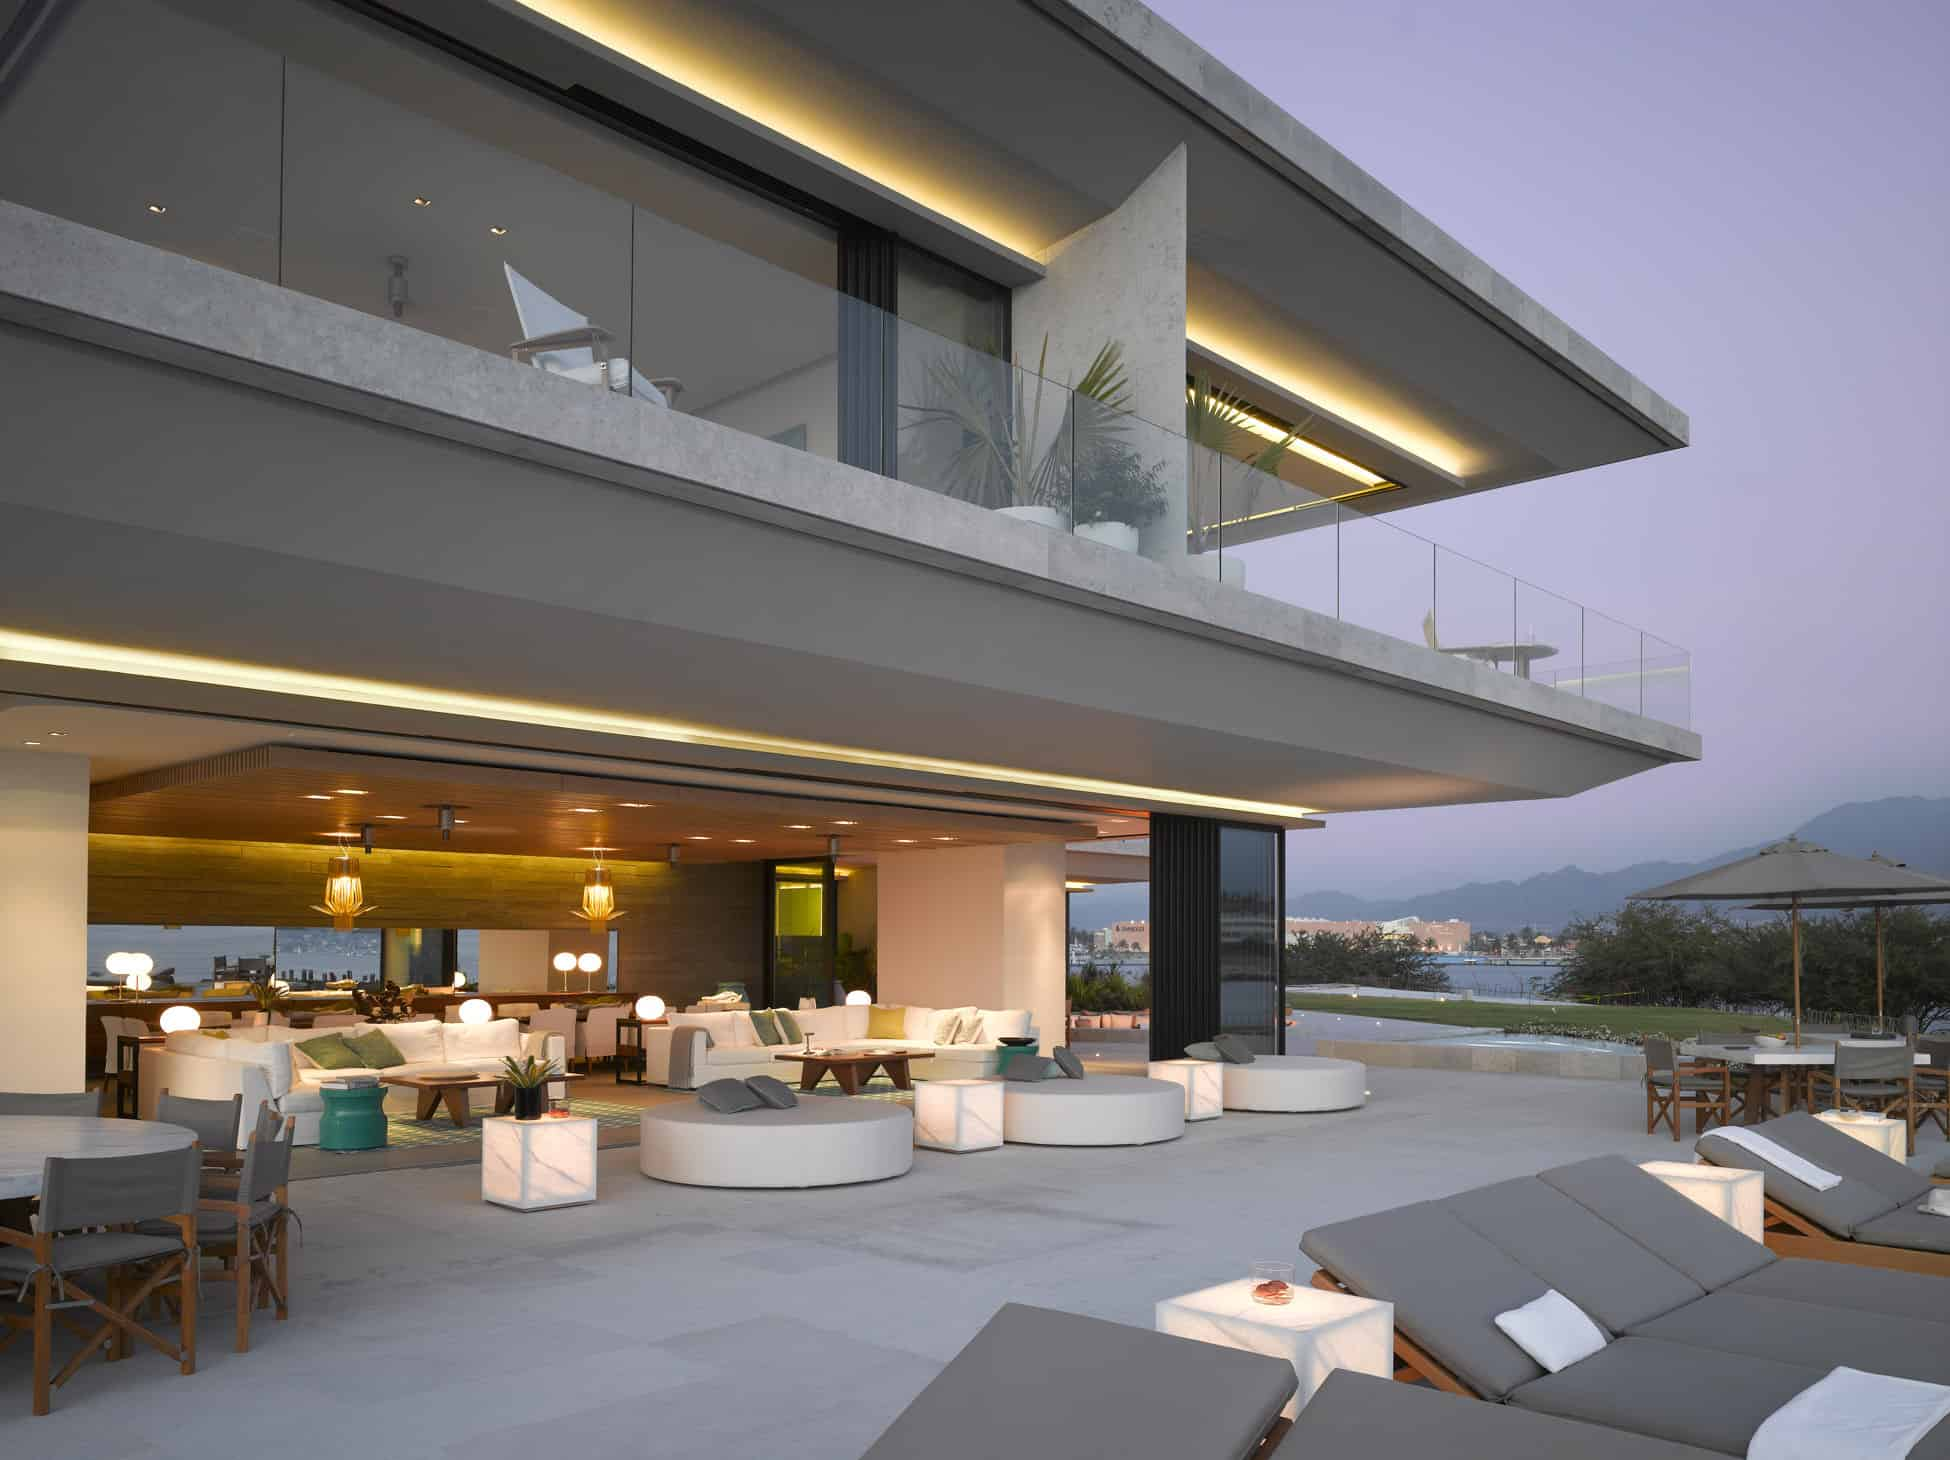 A huge modern house with gray exterior and an open concept indoor. The outdoor area boasts amazing amenities as well.